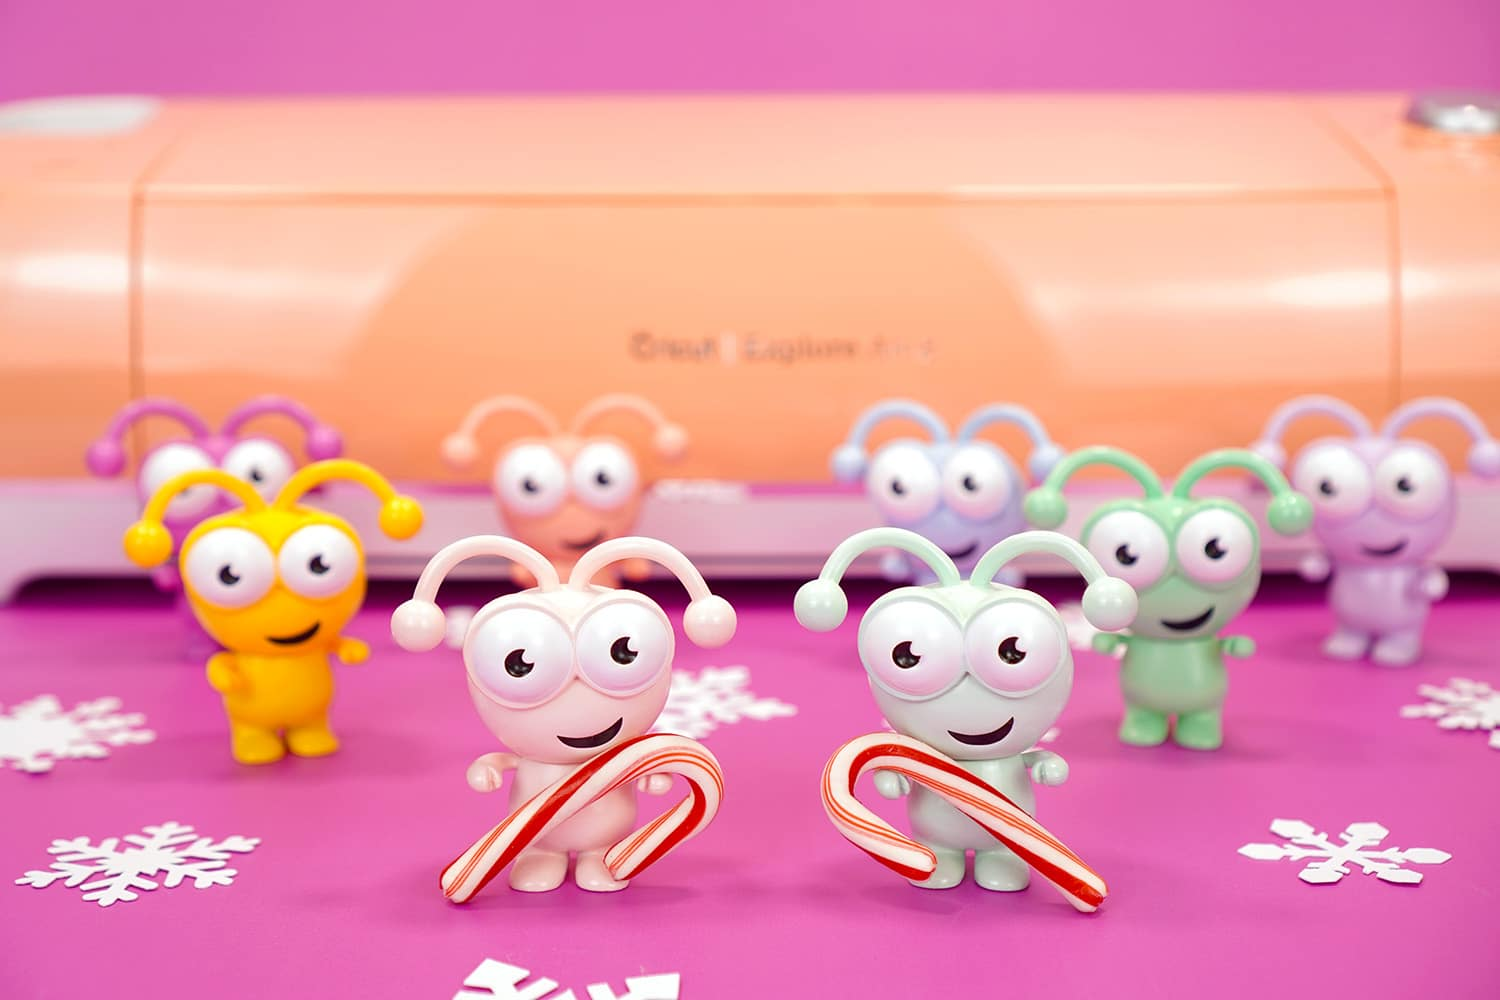 Rainbow colored Cricut Cutie figures holding candy canes on purple background with peach Cricut Explore Air 2 machine